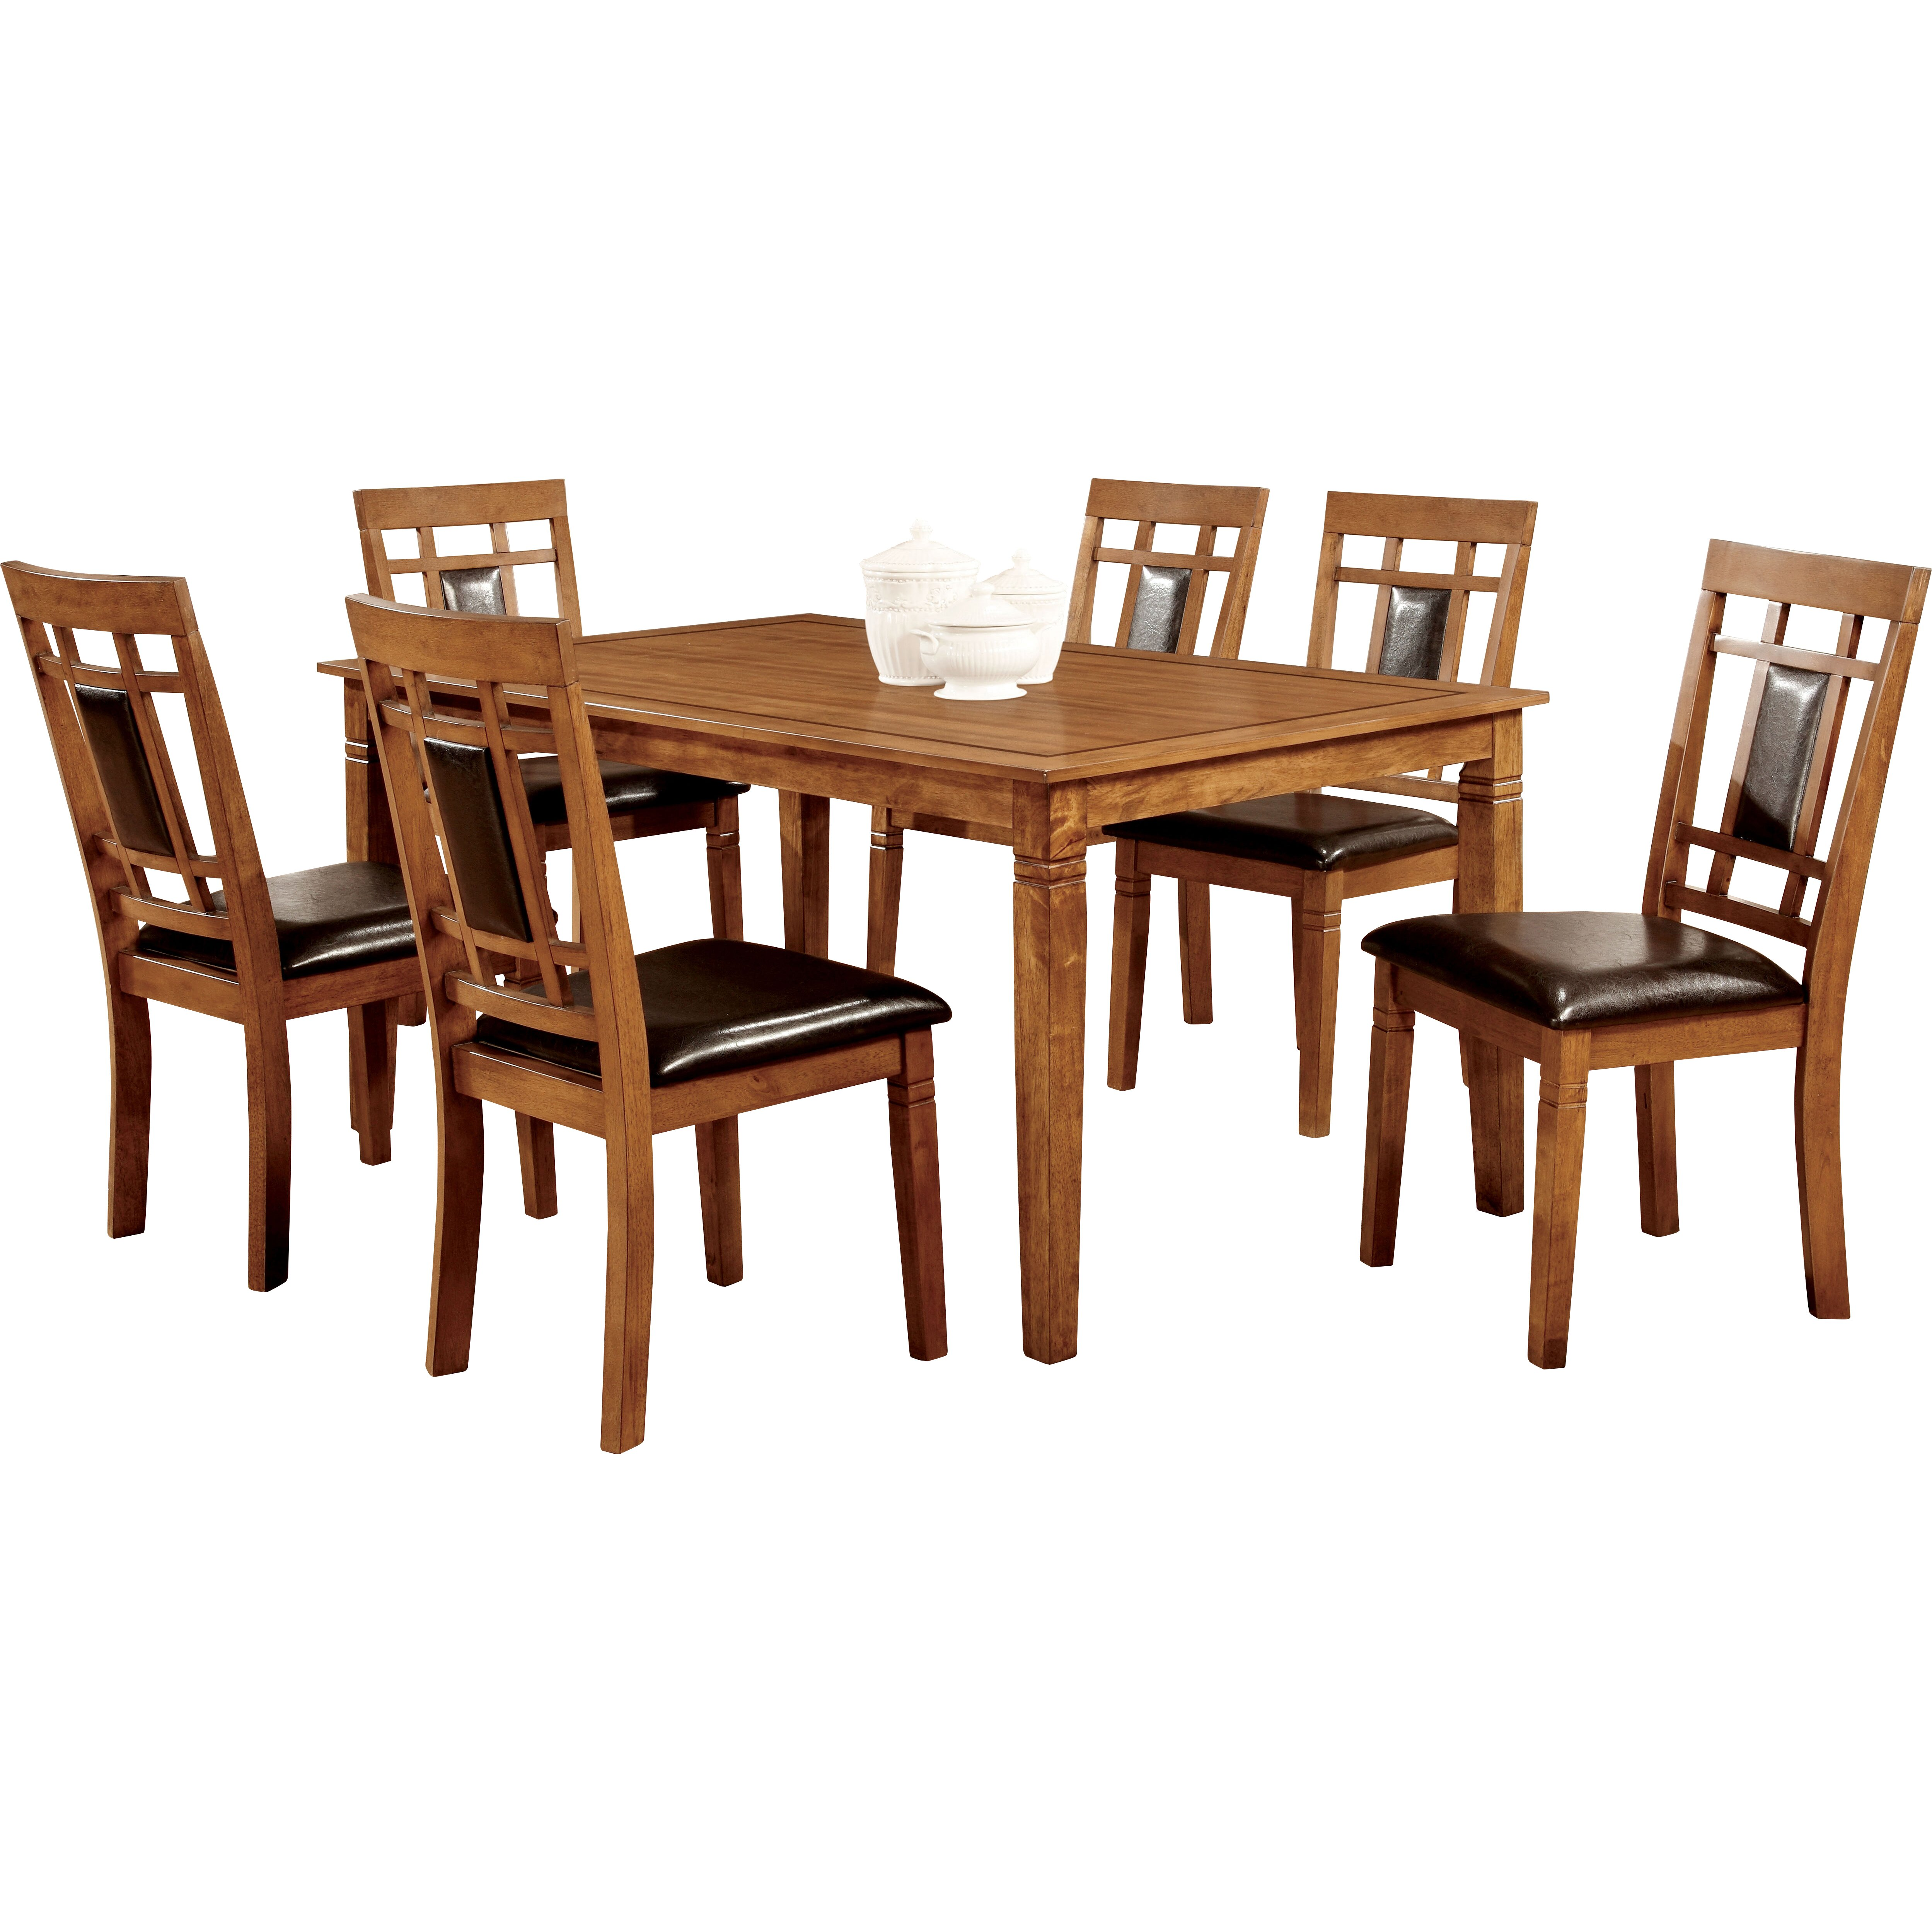 Hokku designs molina 7 piece dining set reviews wayfair Dining set design ideas